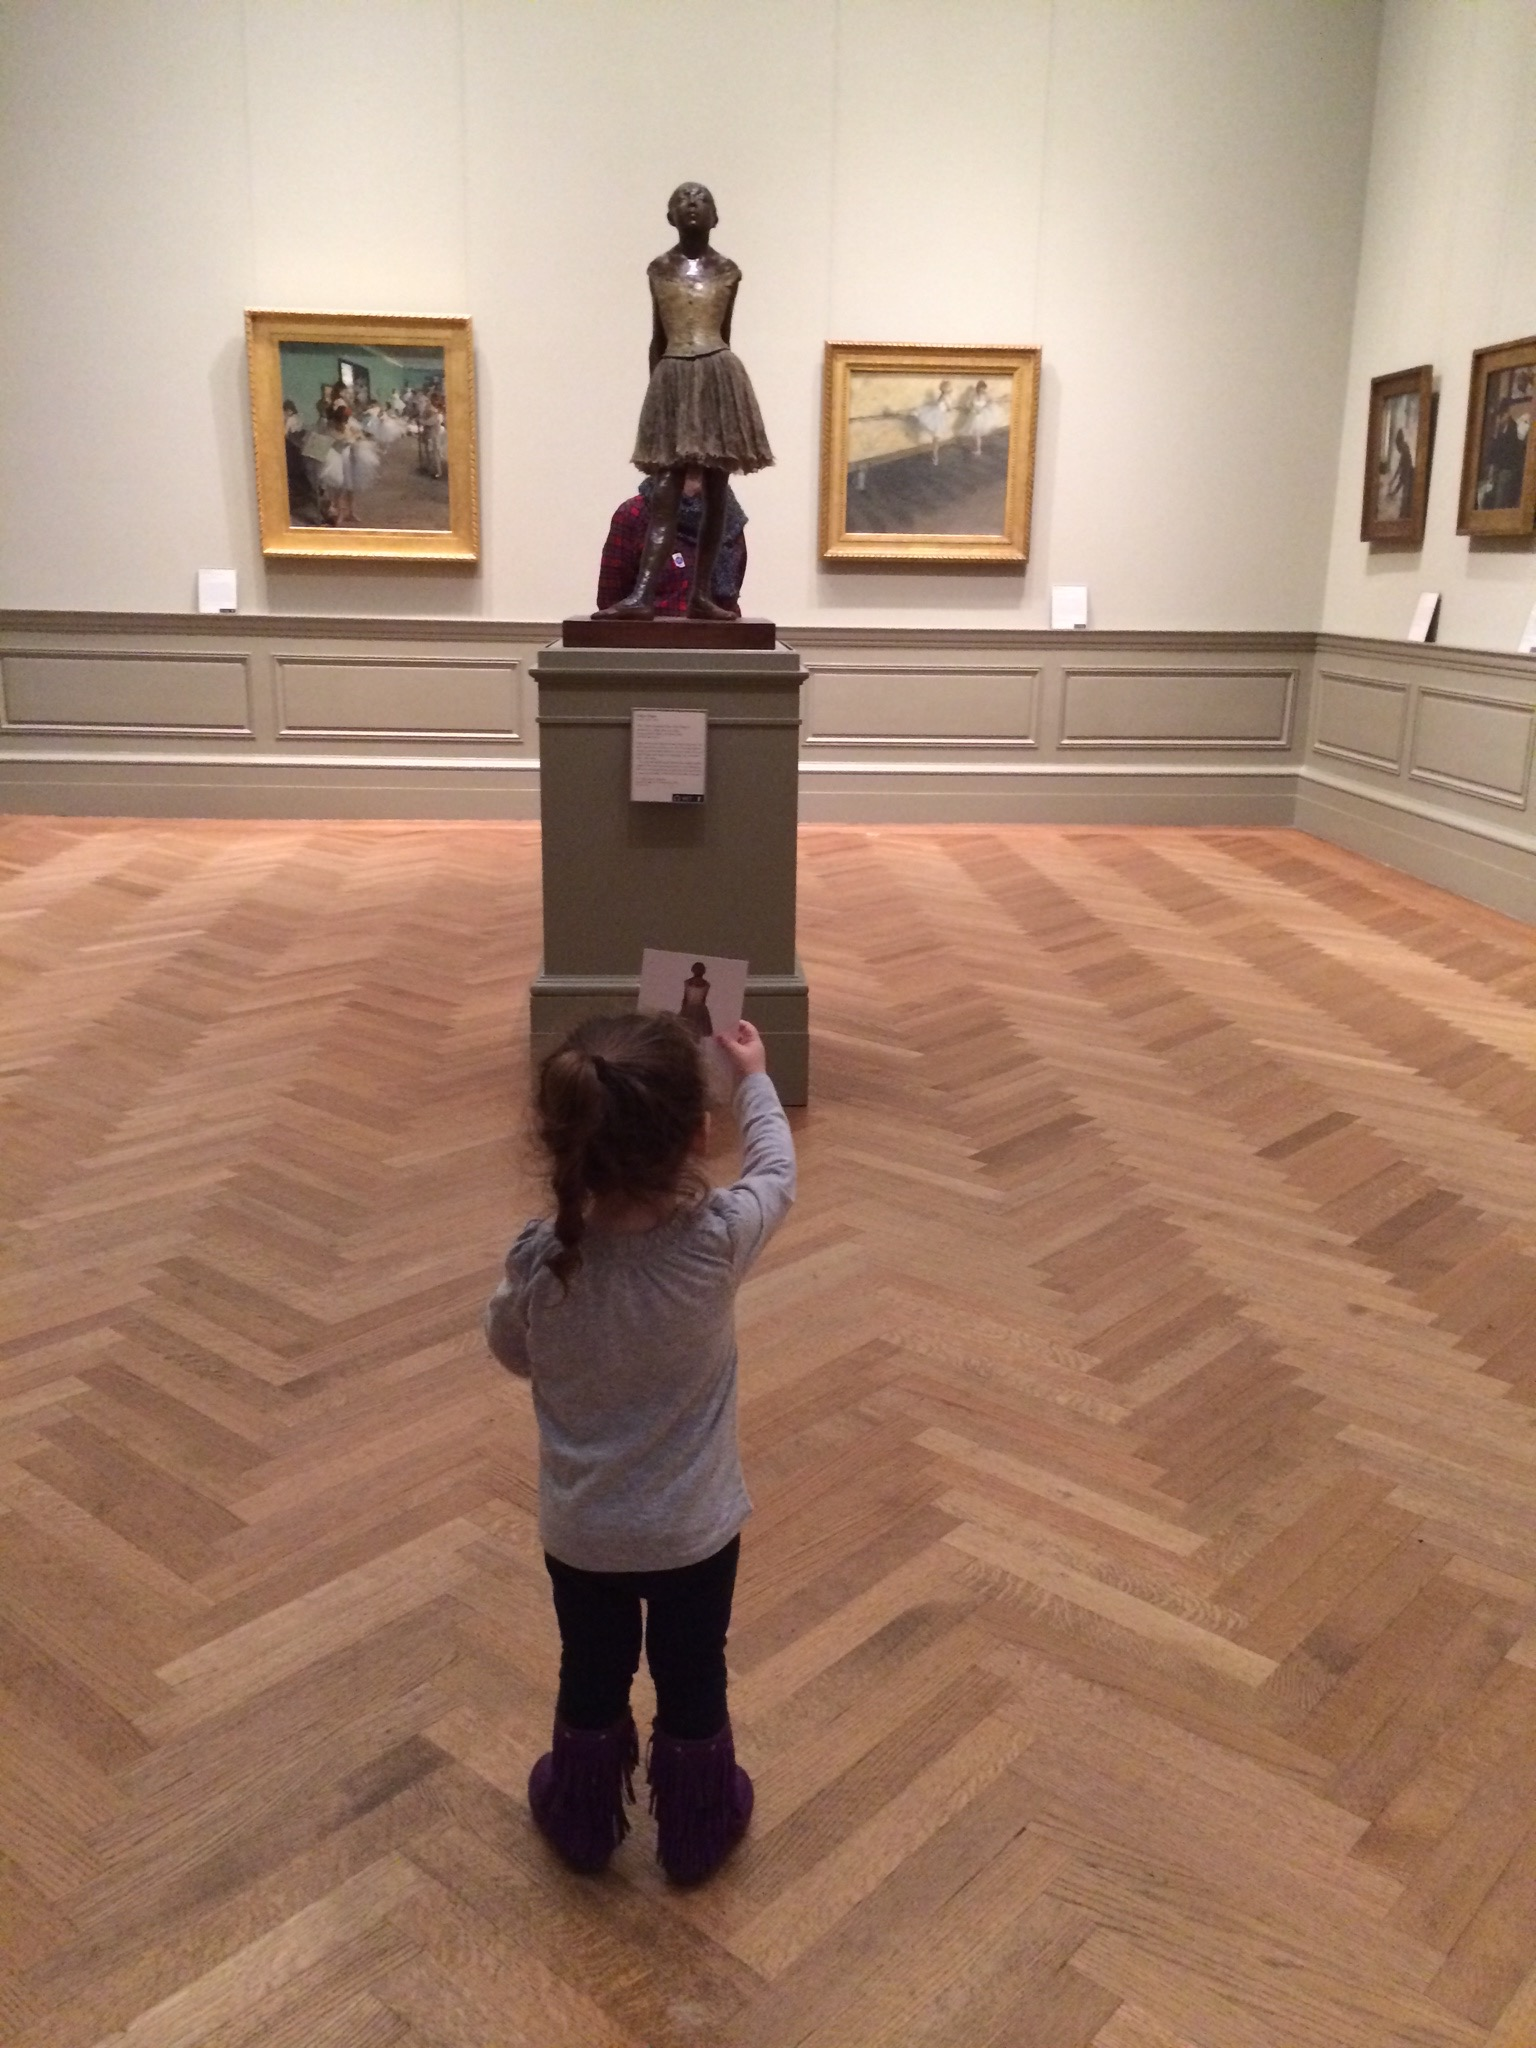 Lielle Meital admires the Degas sculpture and wishes all our friends and relatives a lovely Shabbat and a joyous Shavuos.